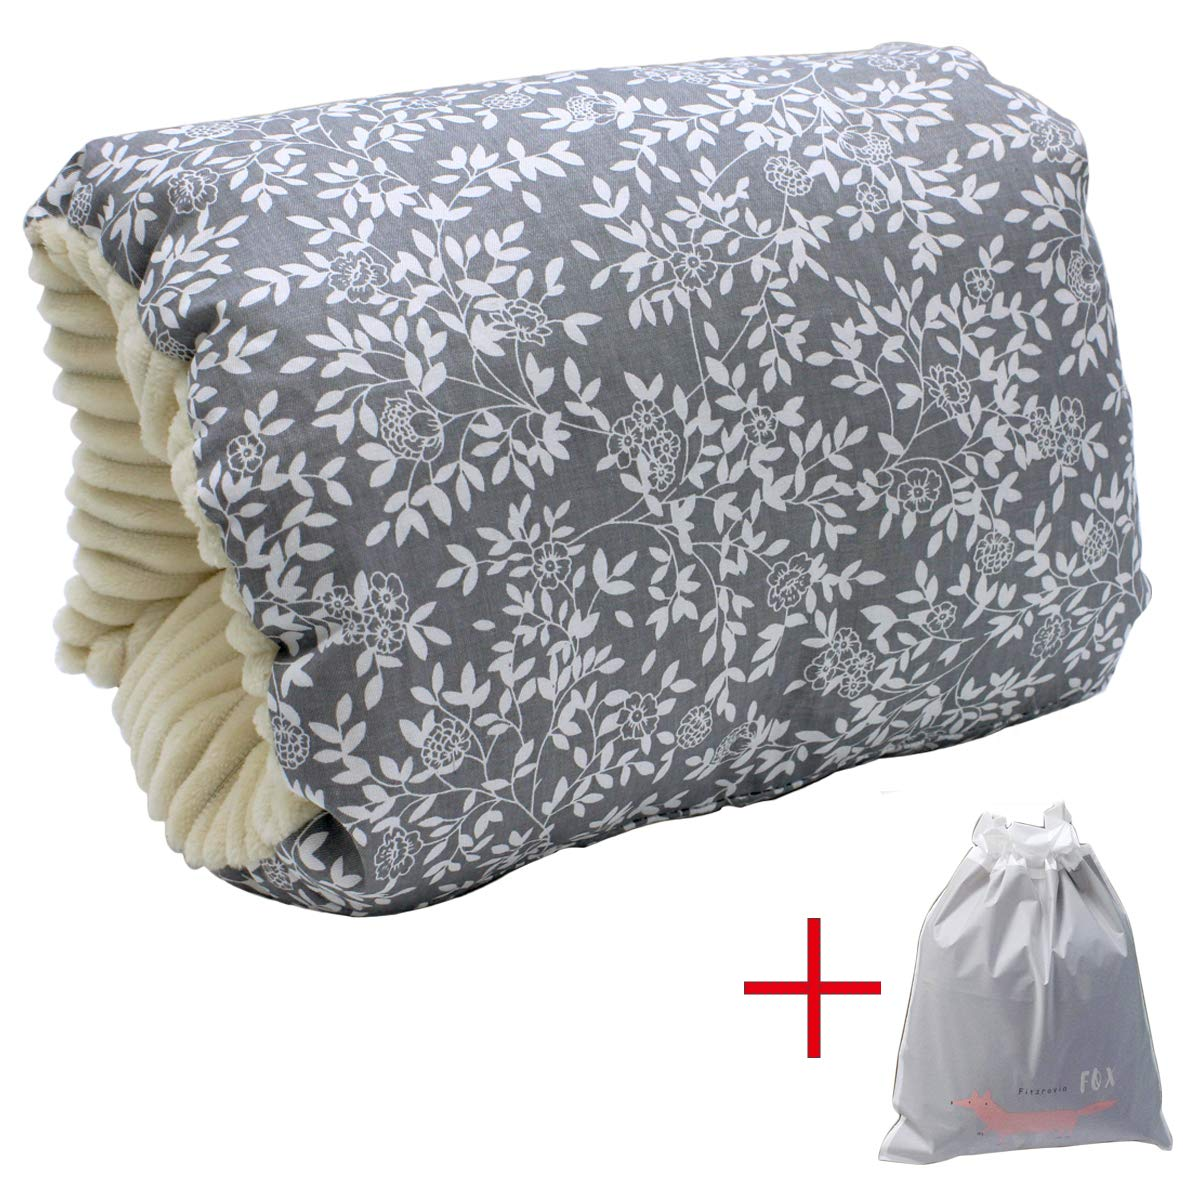 Baby Feeding Pillow,Travel Nursing Pillow Portable Arm Breastfeeding Pillow,Slip-On Arm Support Cusion with Storage Bag (Leaves)